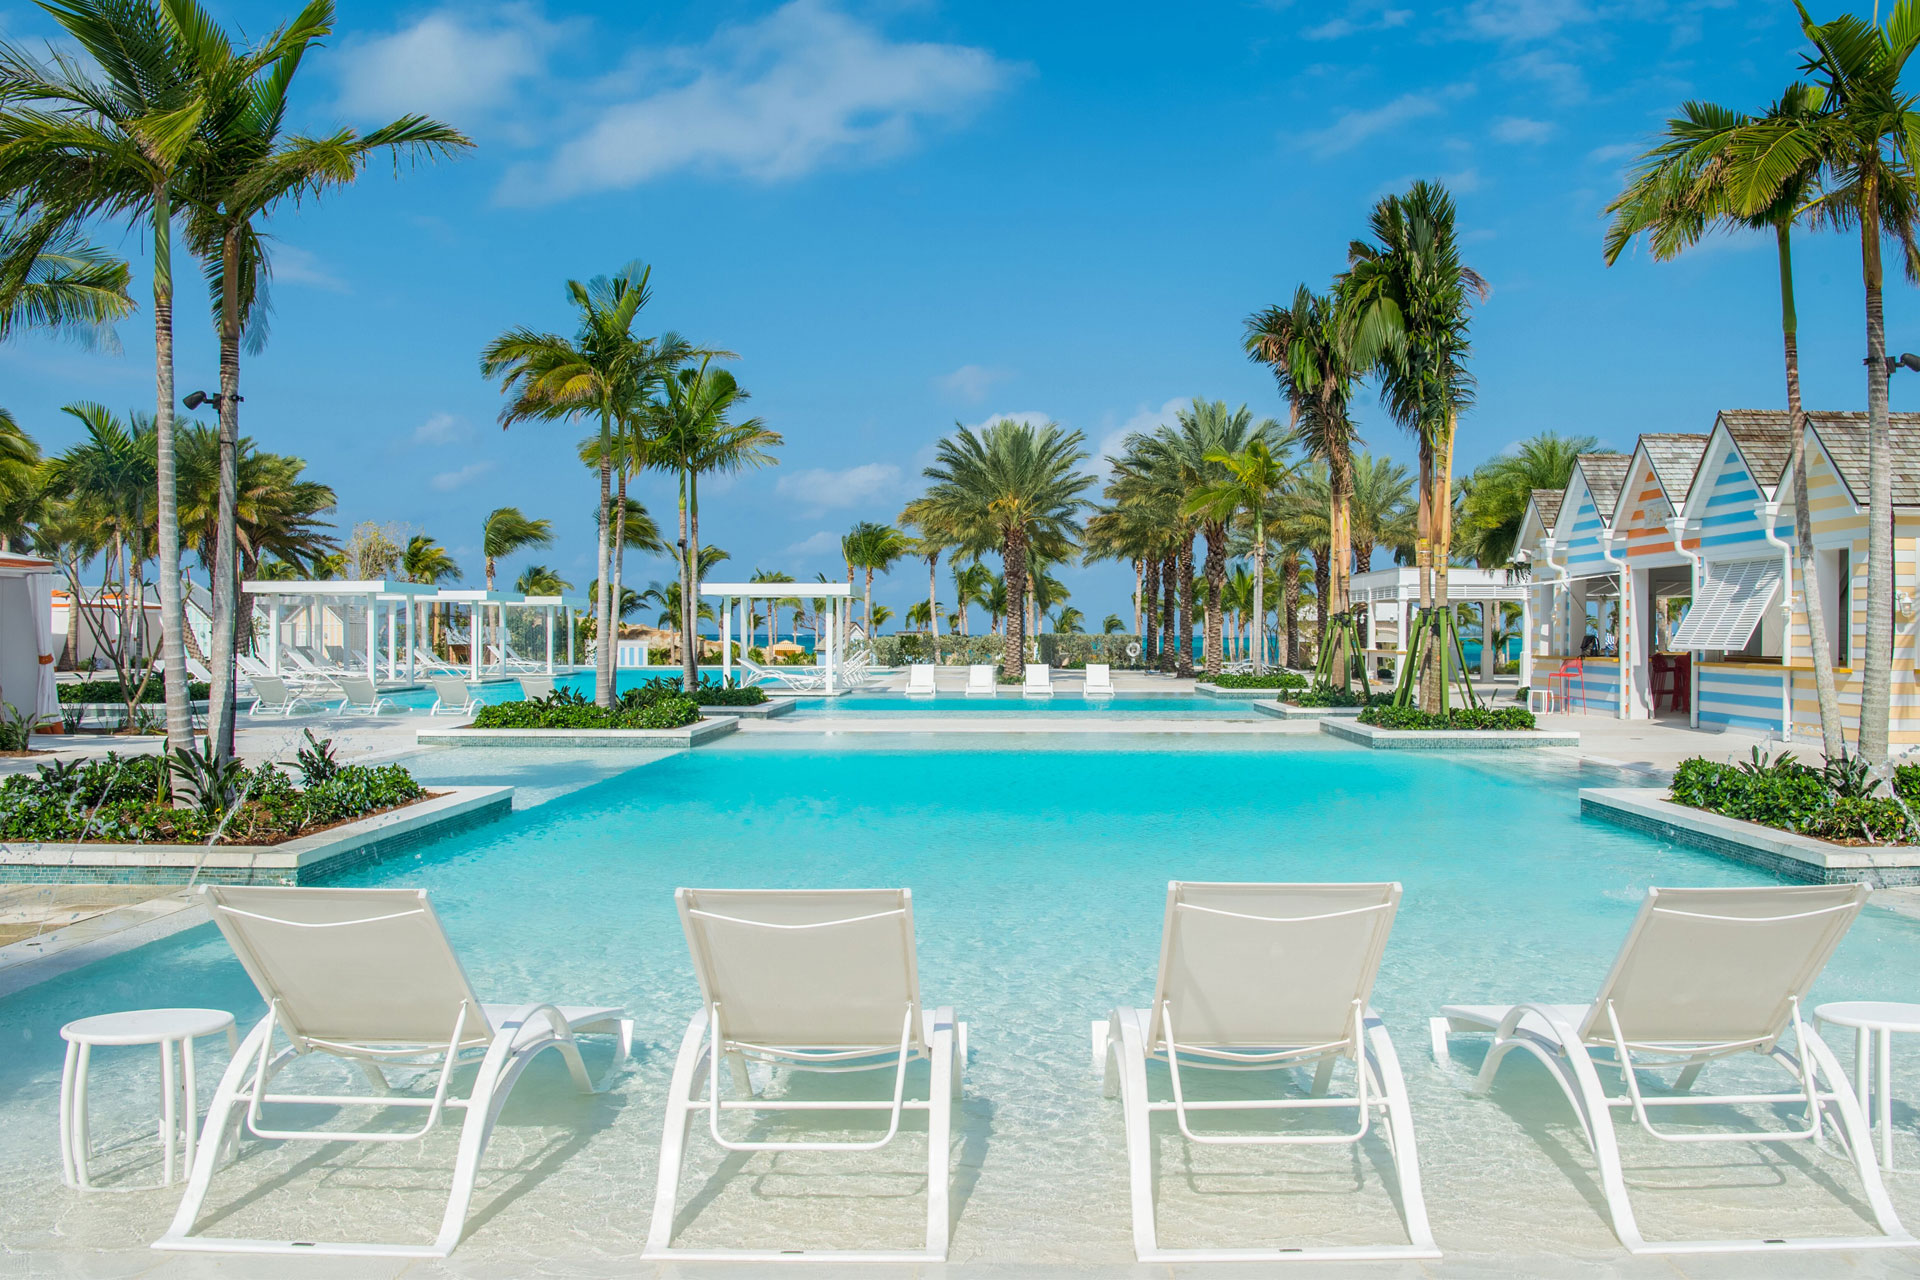 Baha Mar Drift Pool; Courtesy of Baha Mar Resort